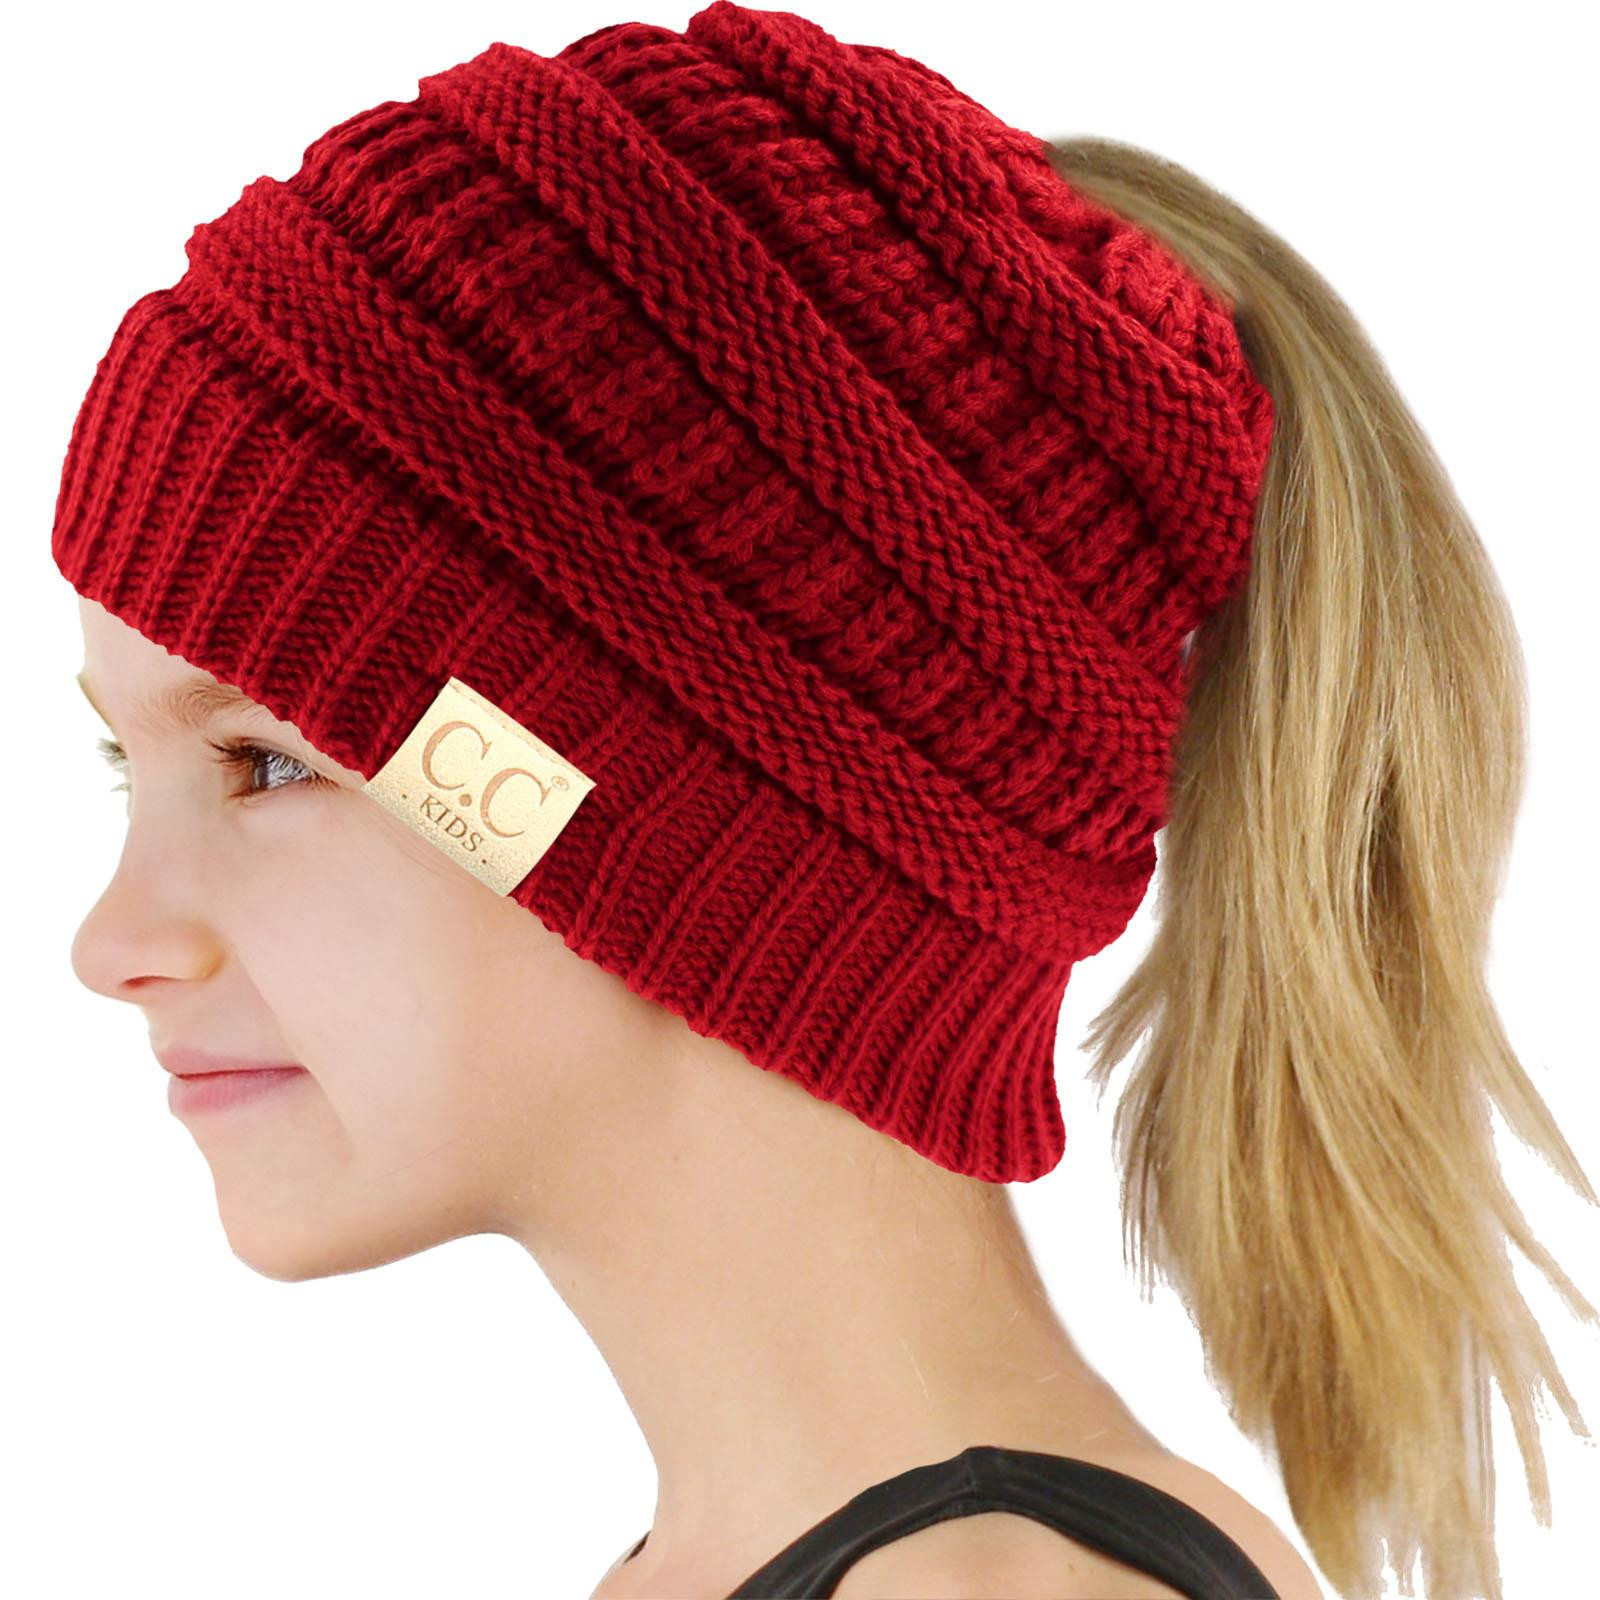 Ponytail Beanie Hat Awesome Cc Kids Girls Beanietail Messy Bun Ponytail Stretch Knit Of Amazing 48 Pictures Ponytail Beanie Hat